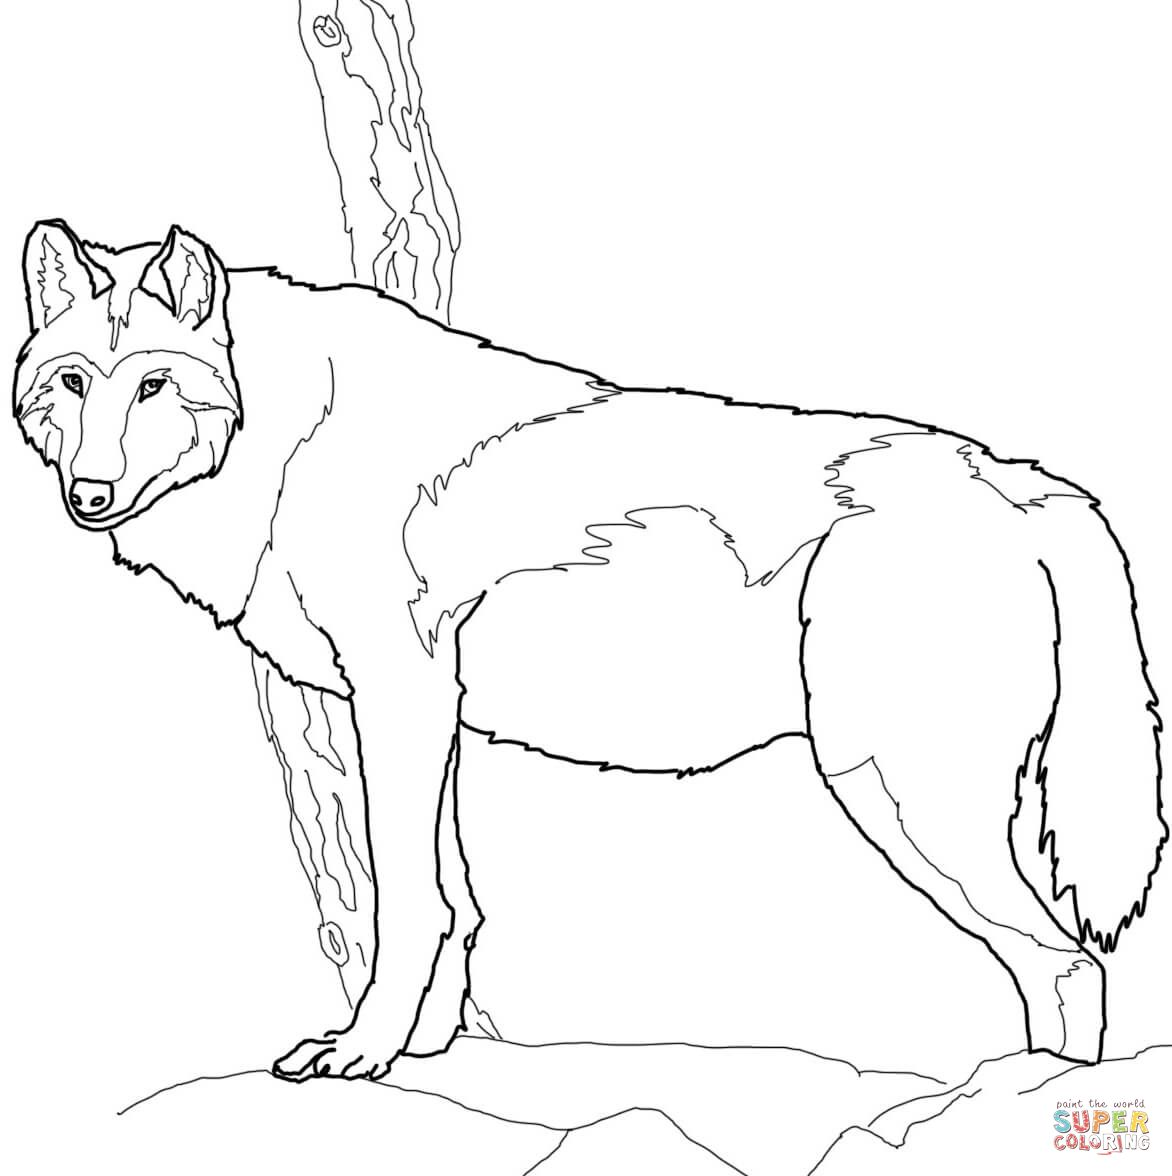 13++ Supercoloring wolf ideas in 2021